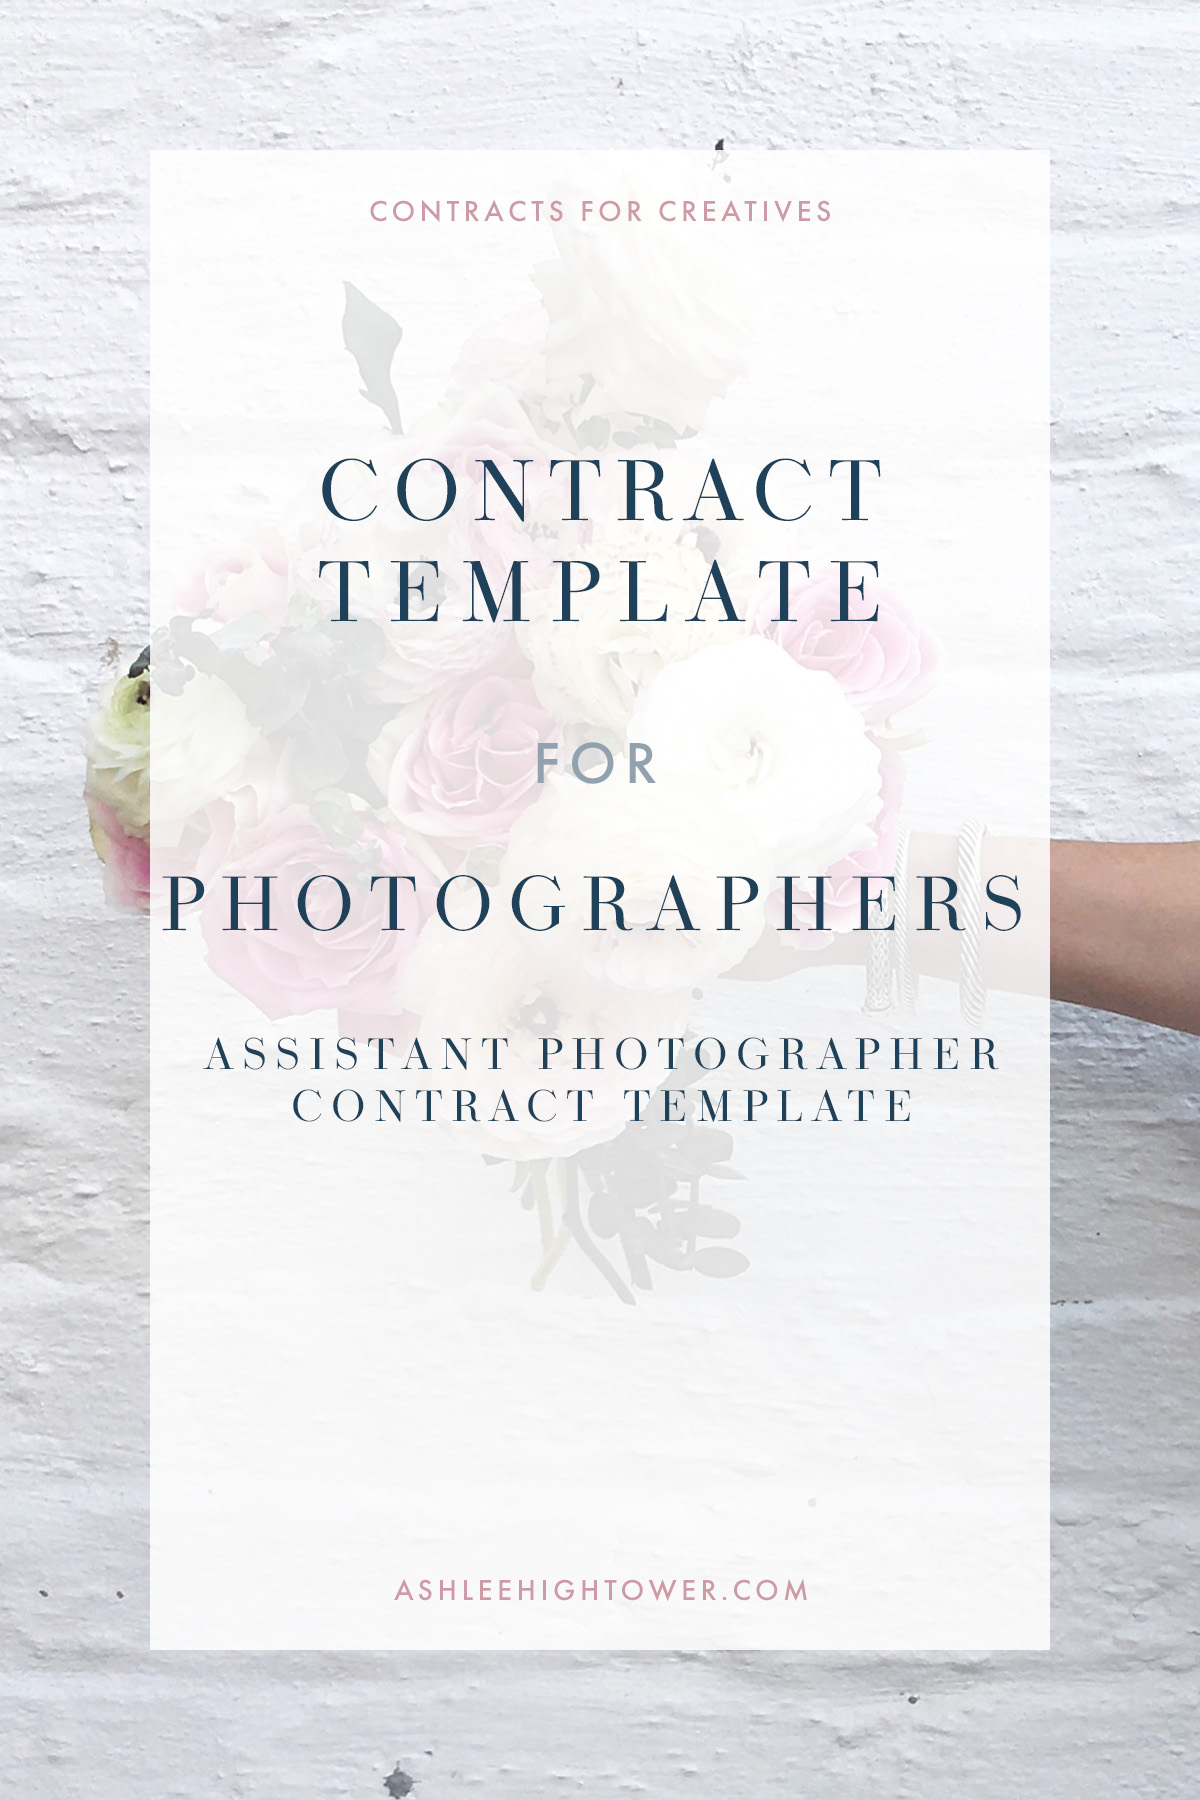 Contracts for Creatives | Assistant Photographer Contract Template | Photographer Contracts | Ashlee Hightower